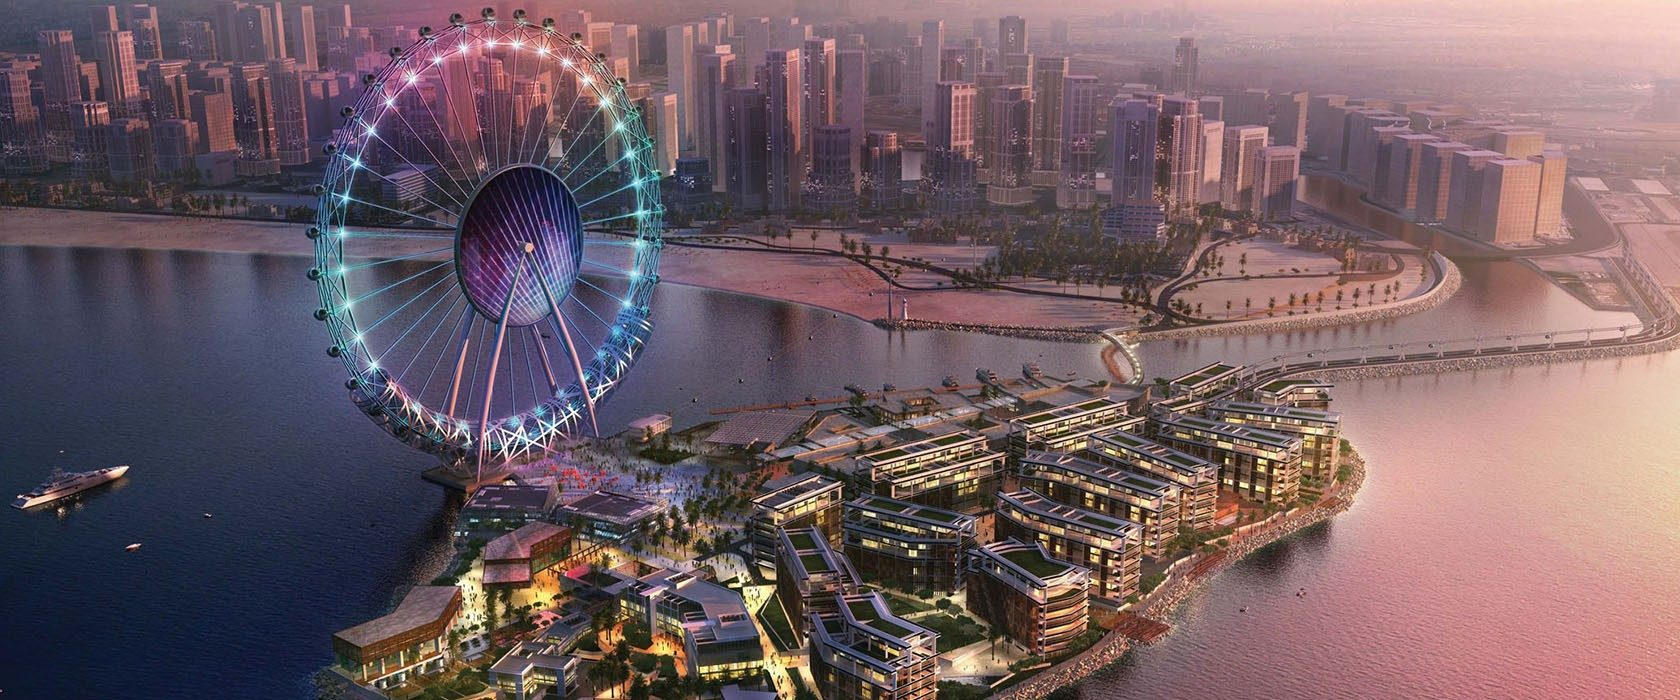 Tallest Ferris Wheel In The World >> The Ain Dubai The Largest Ferris Wheel In The World In Dubai